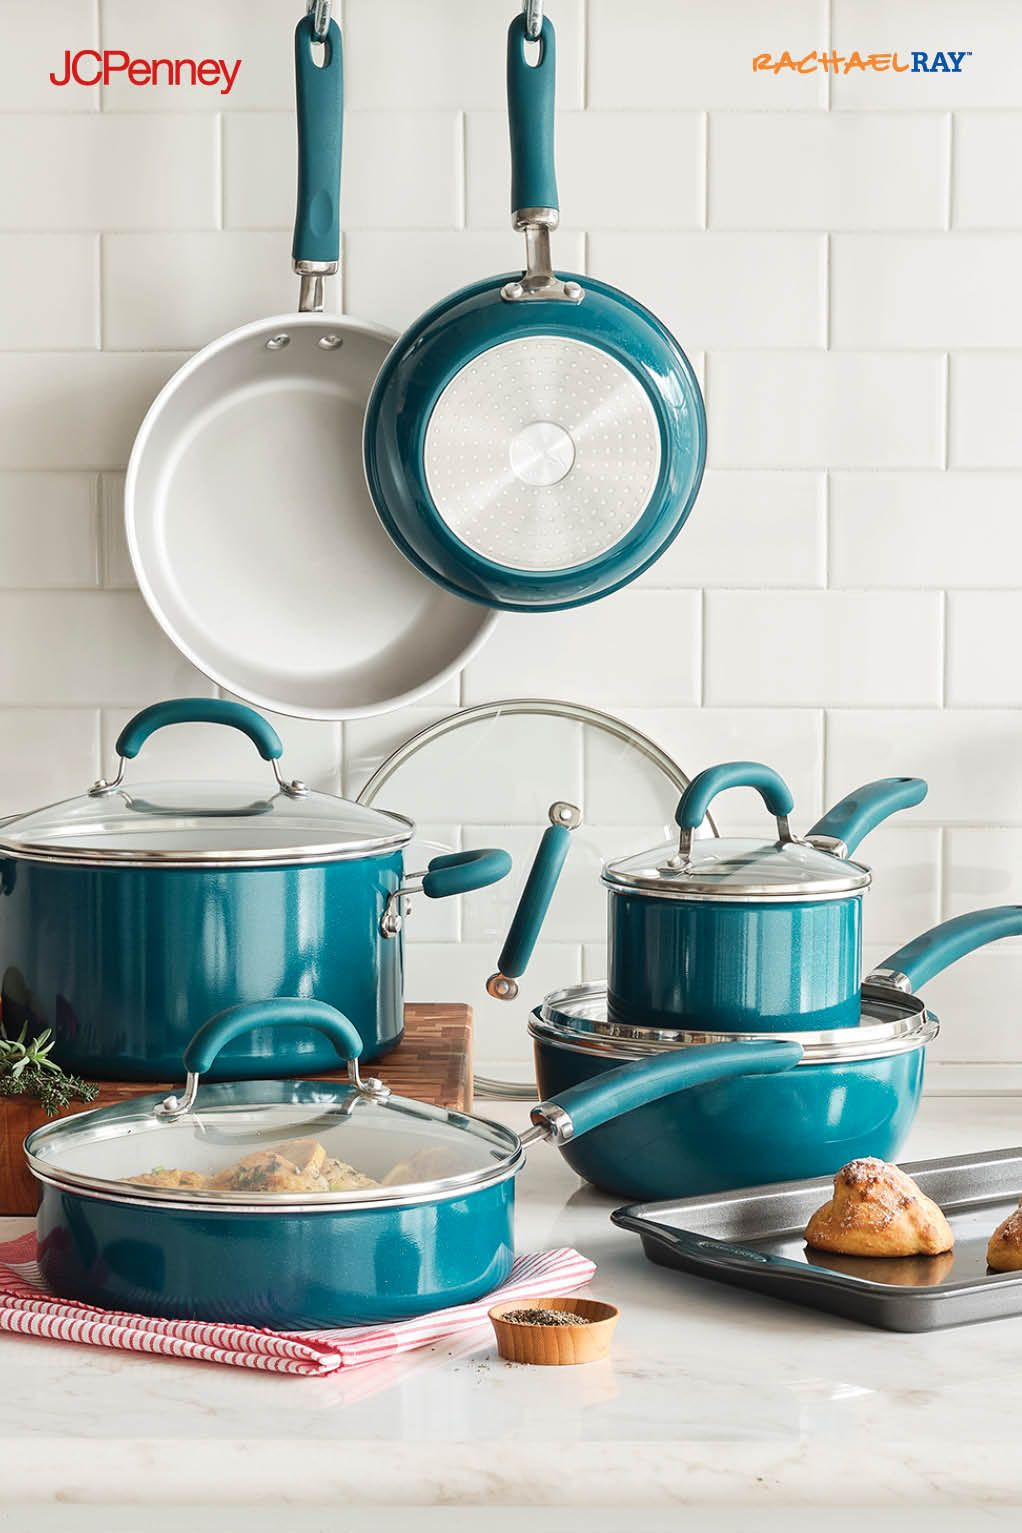 New At Jcpenney Rachael Ray Cookware Is The Perfect Mix Of Fun